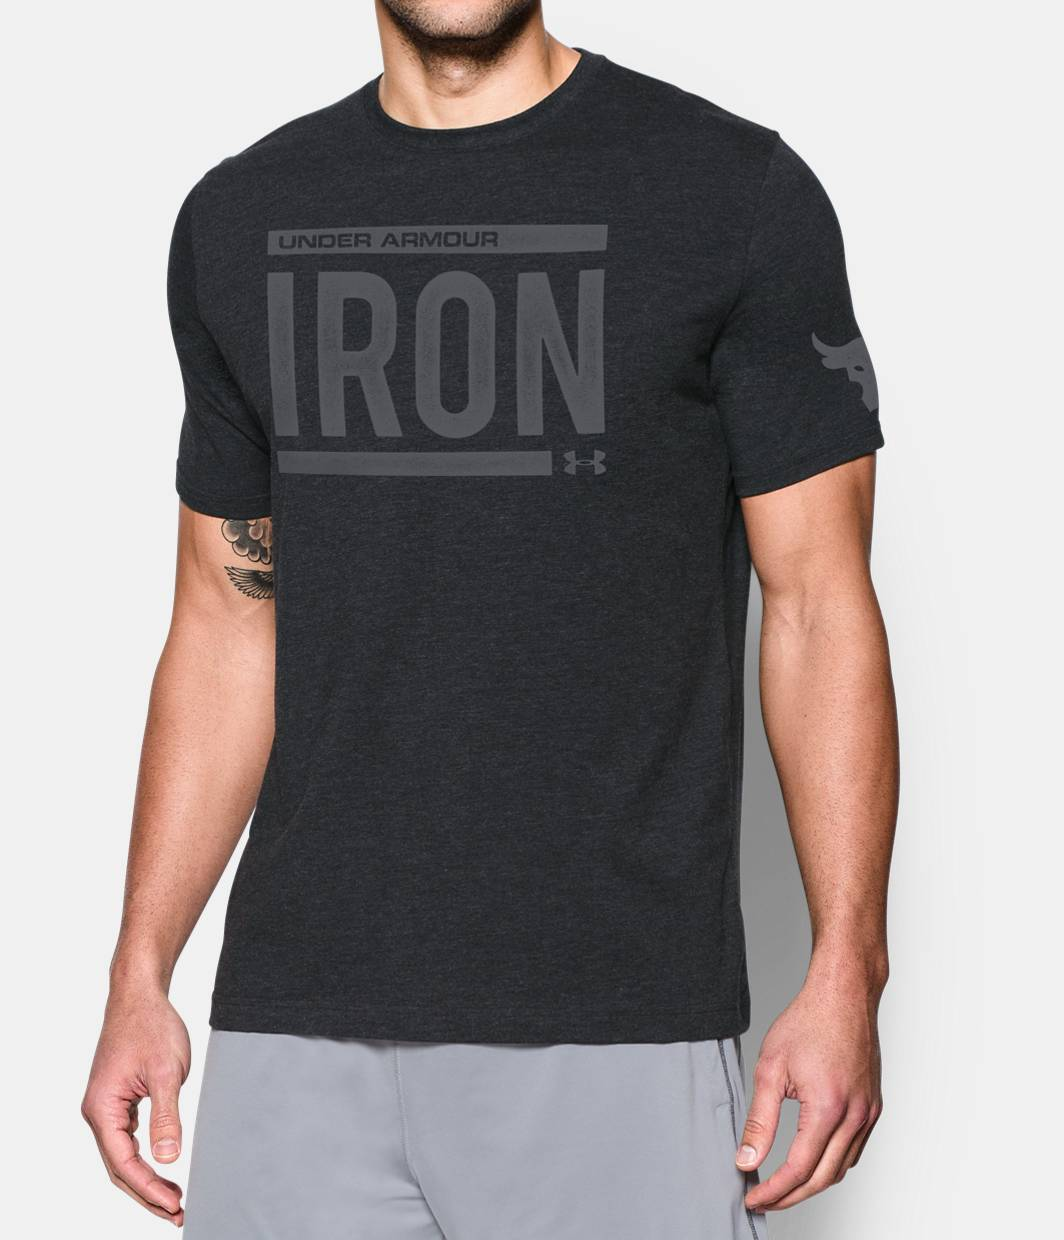 T black shirt rock - Men S Ua X Project Rock Iron T Shirt Black Zoomed Image